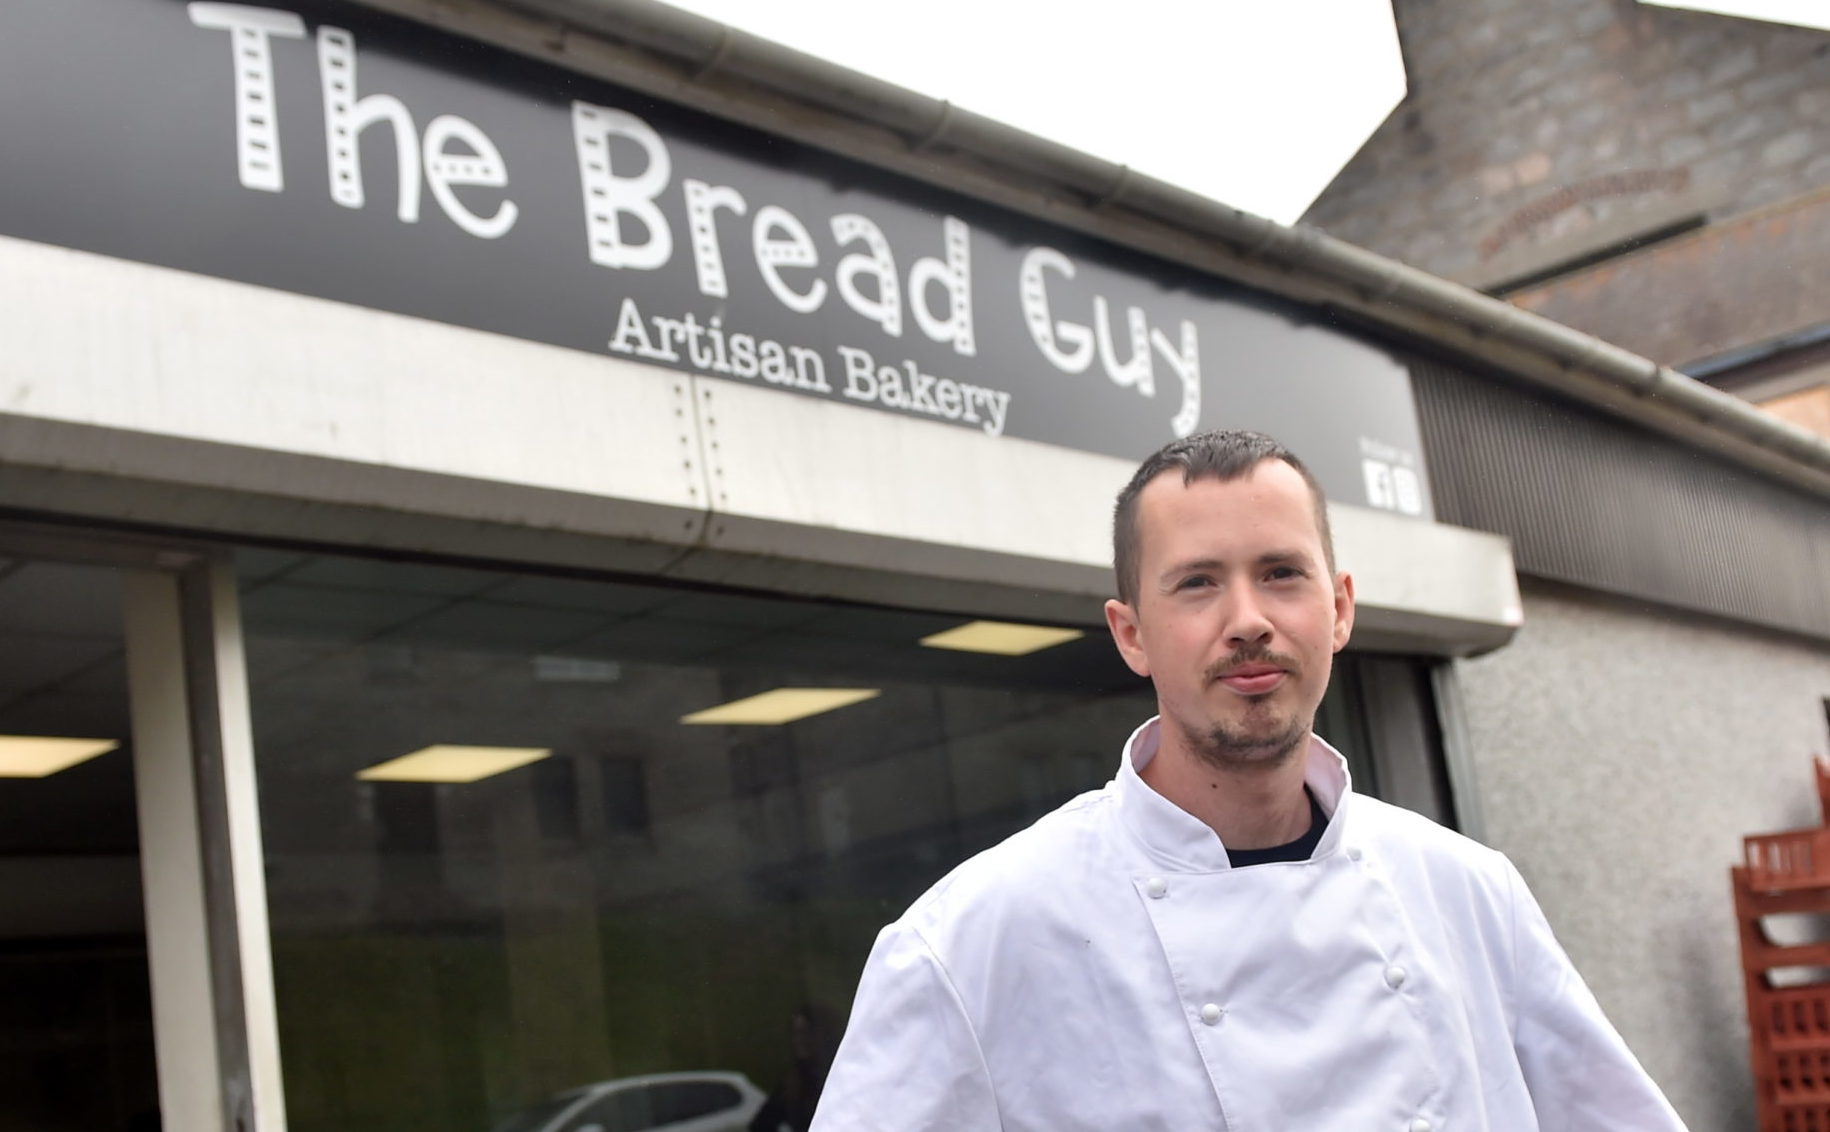 Gary McAllister (Co owner and head baker)